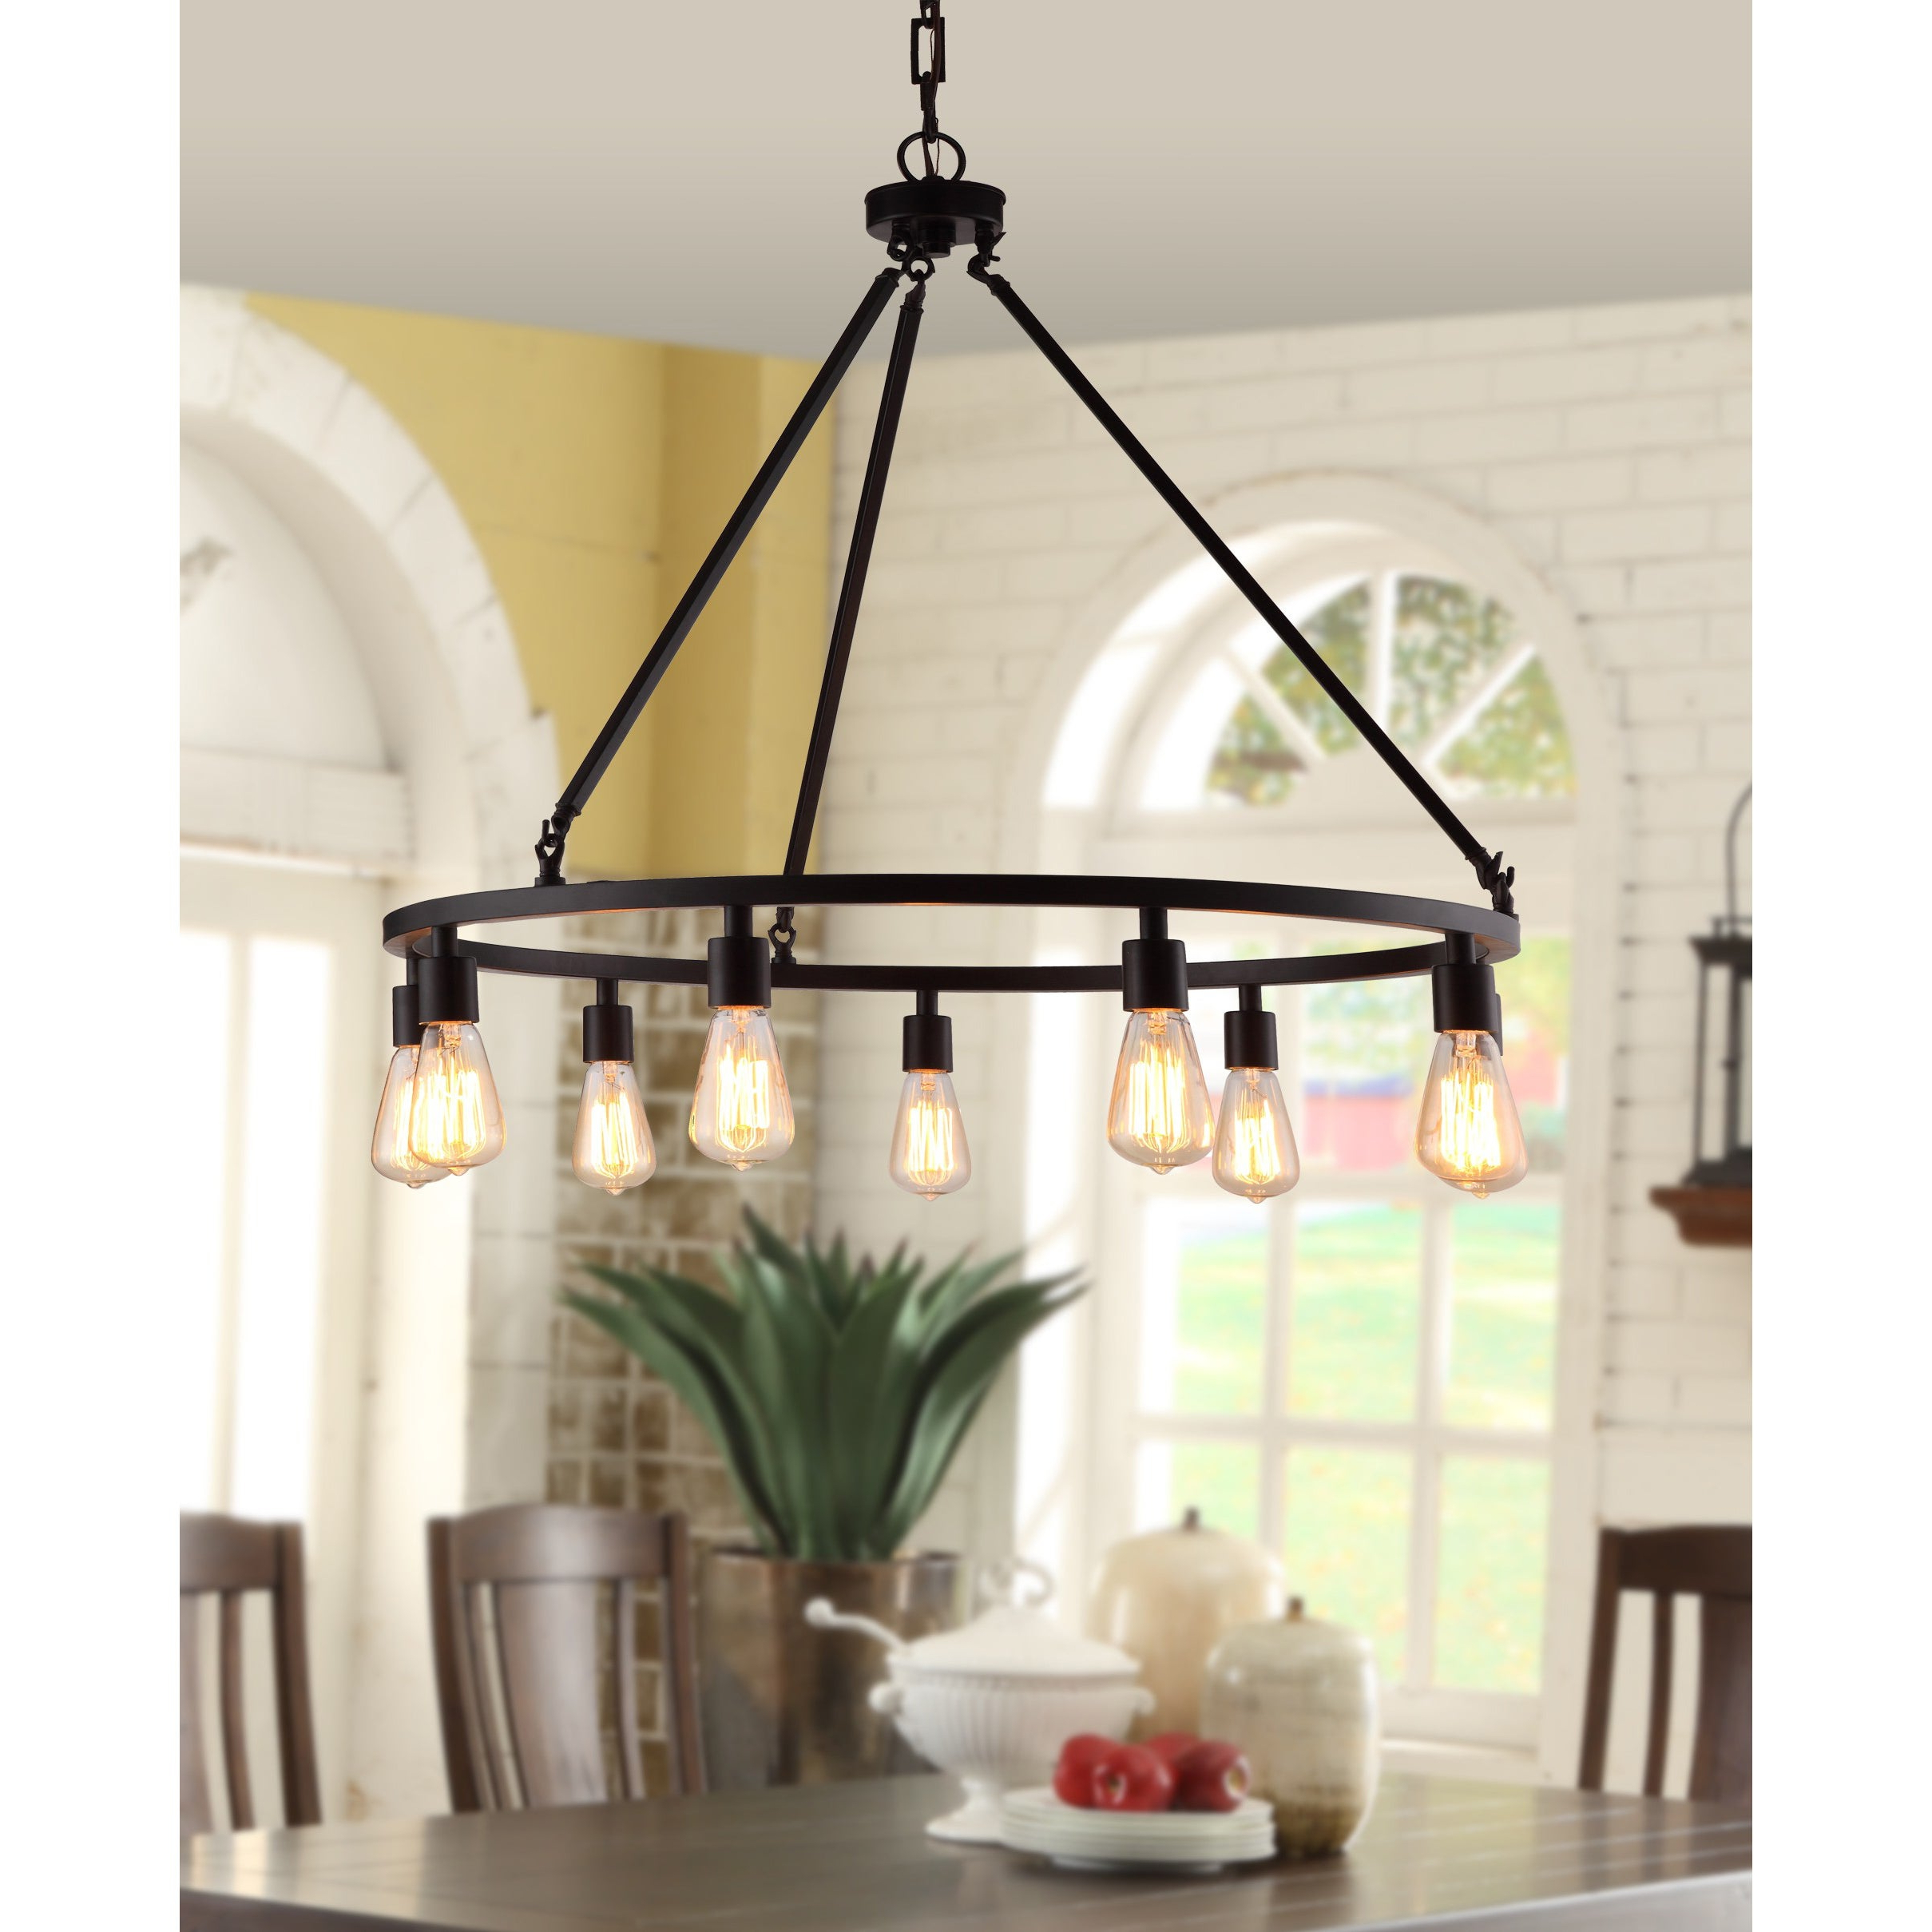 Kenedy 9 Light Candle Style Chandeliers With Regard To Preferred Metal, Farmhouse Ceiling Lighting (Gallery 25 of 25)